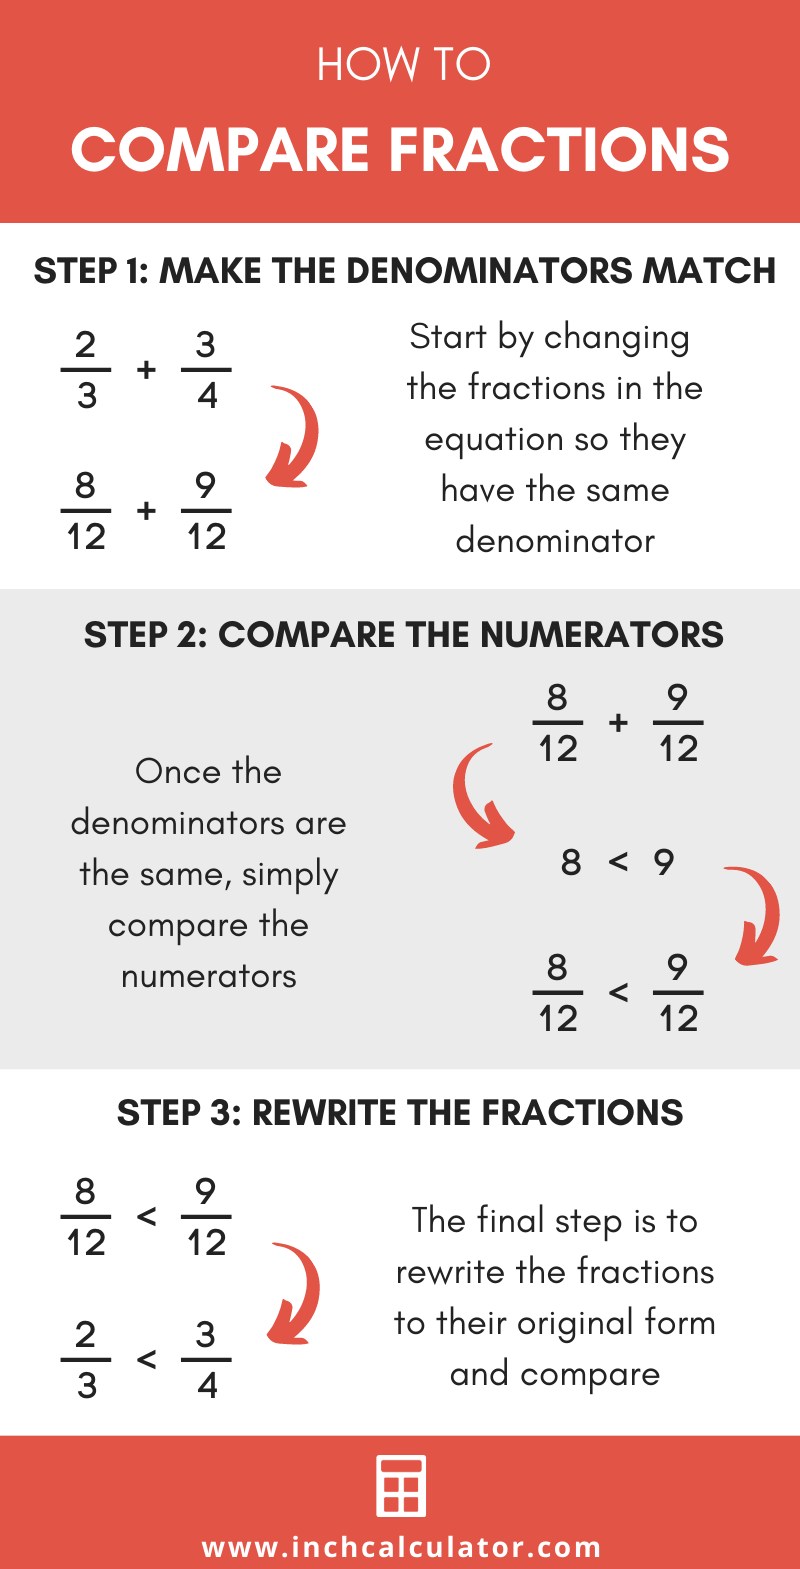 Infographic showing how to compare fractions by making the denominators of each fraction the same and comparing the numerators.